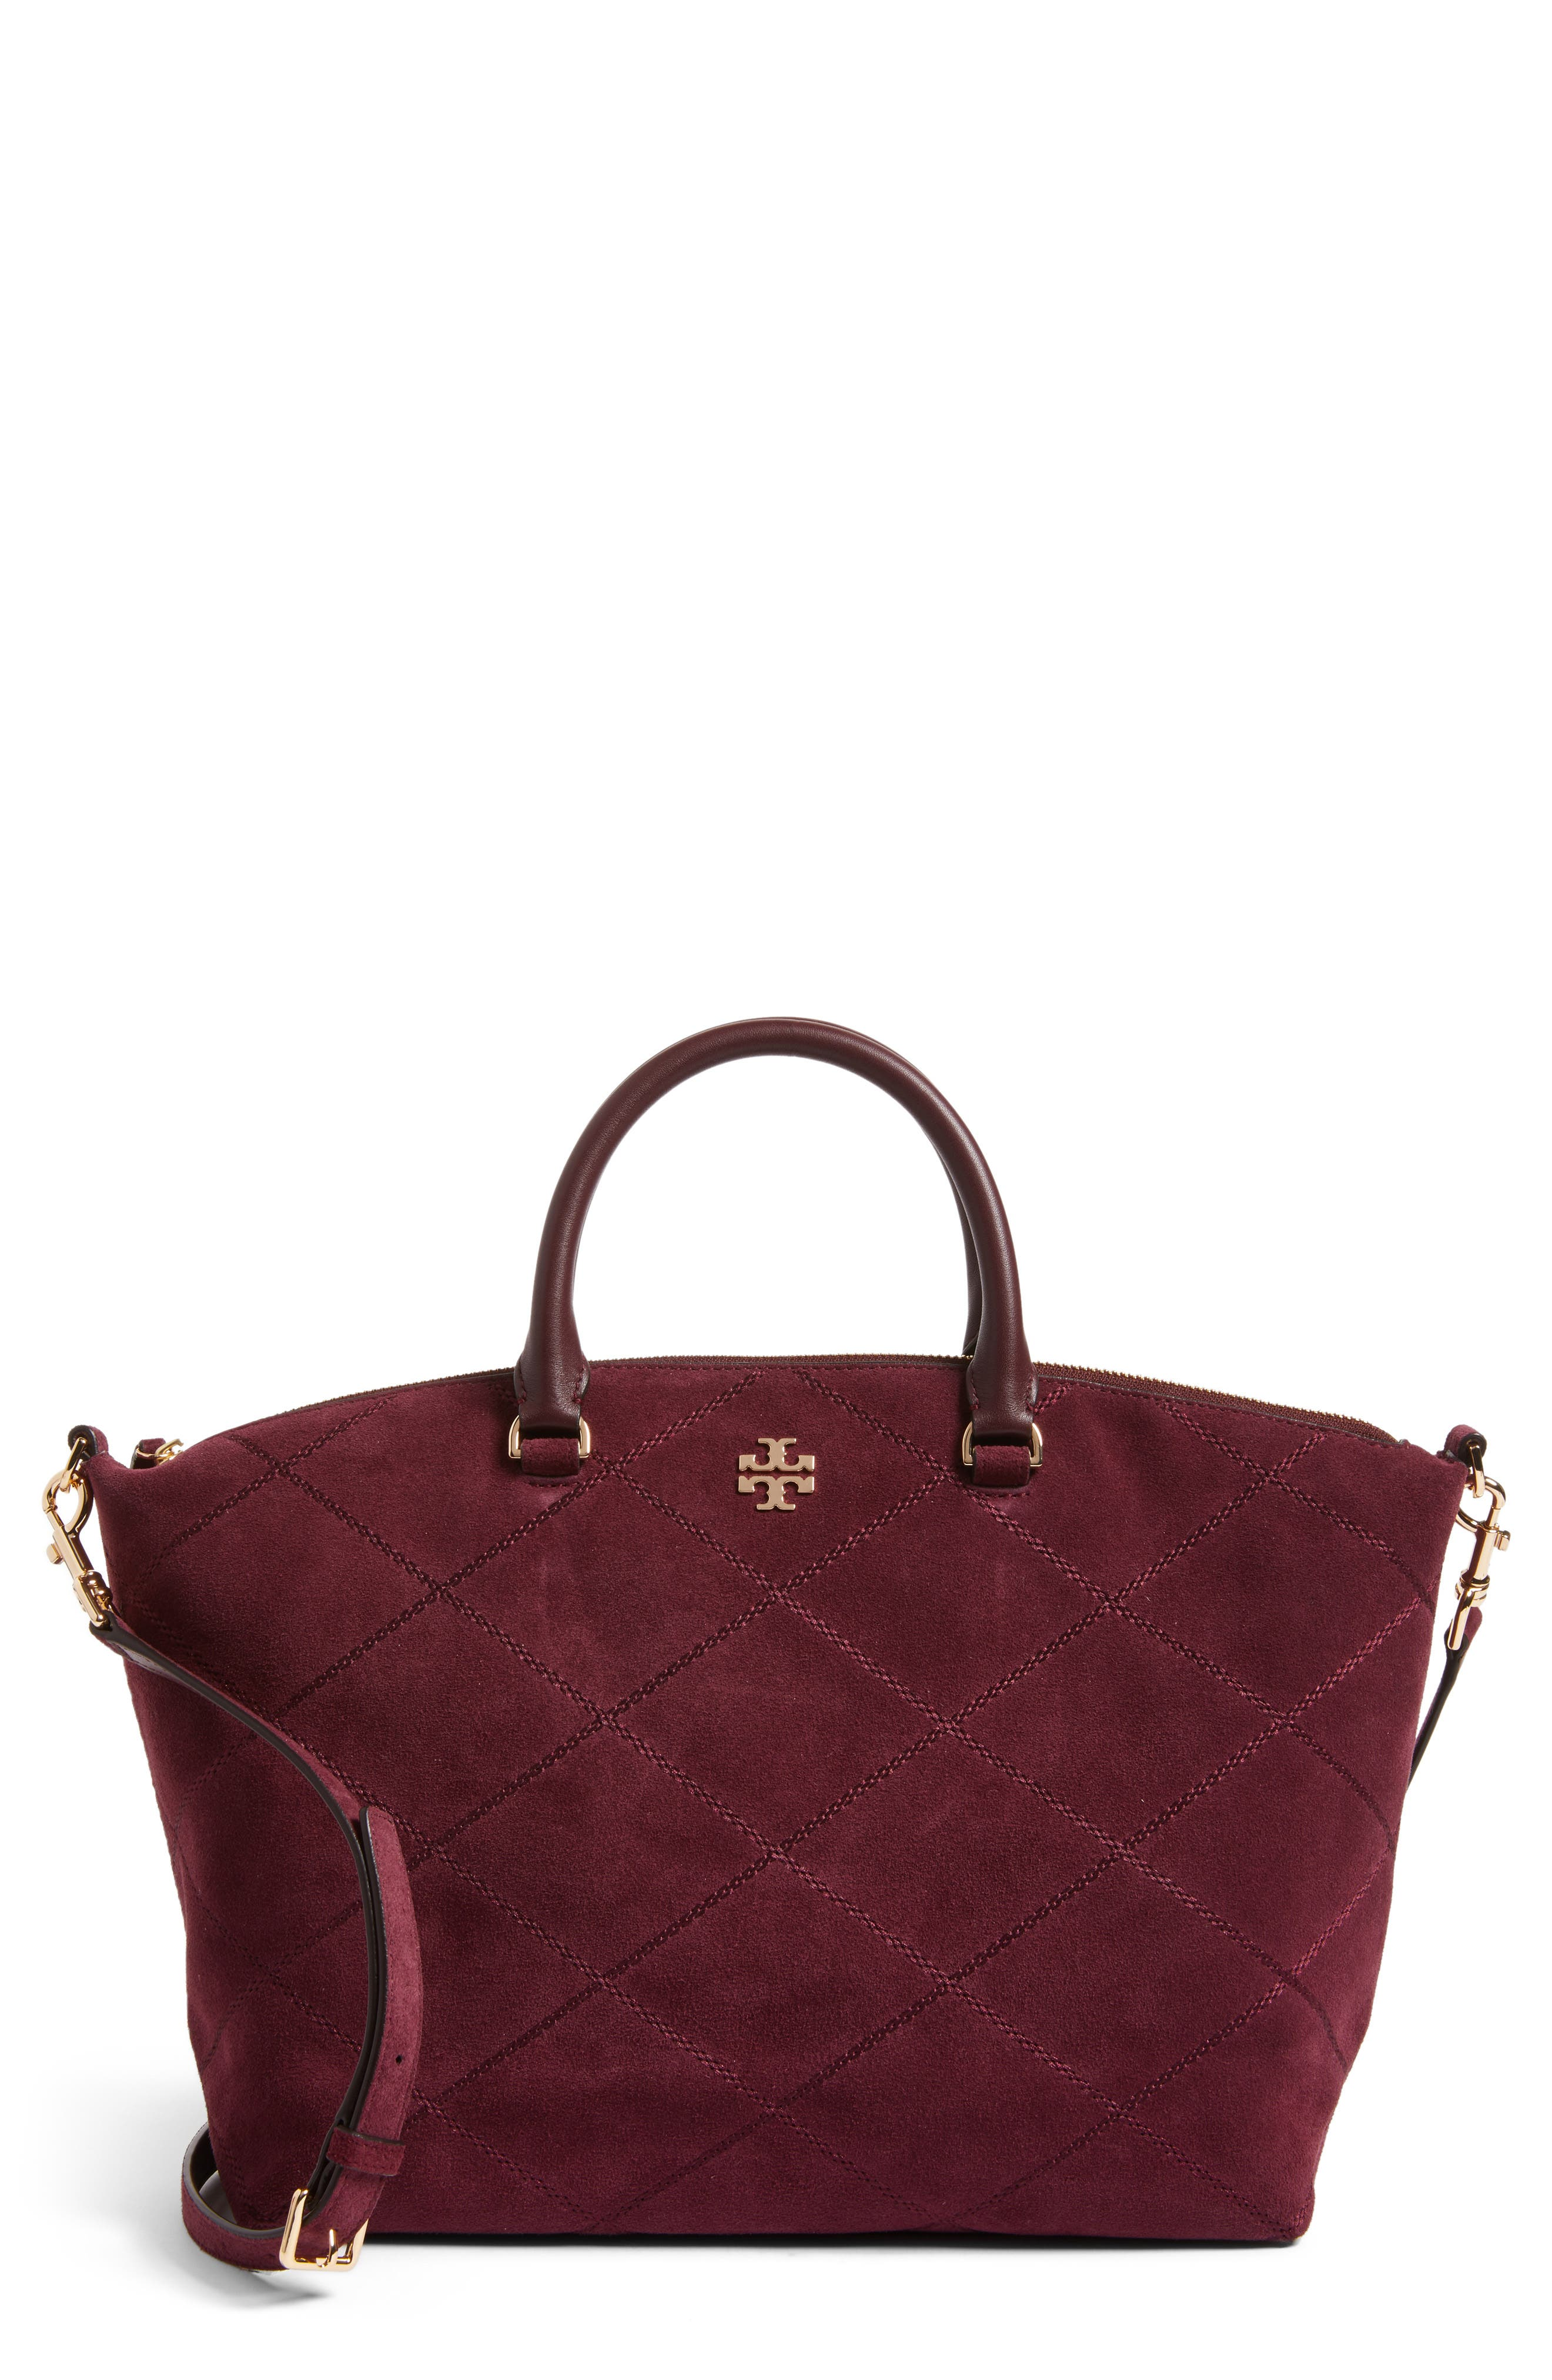 Frida Stitched Suede Satchel,                         Main,                         color, 930